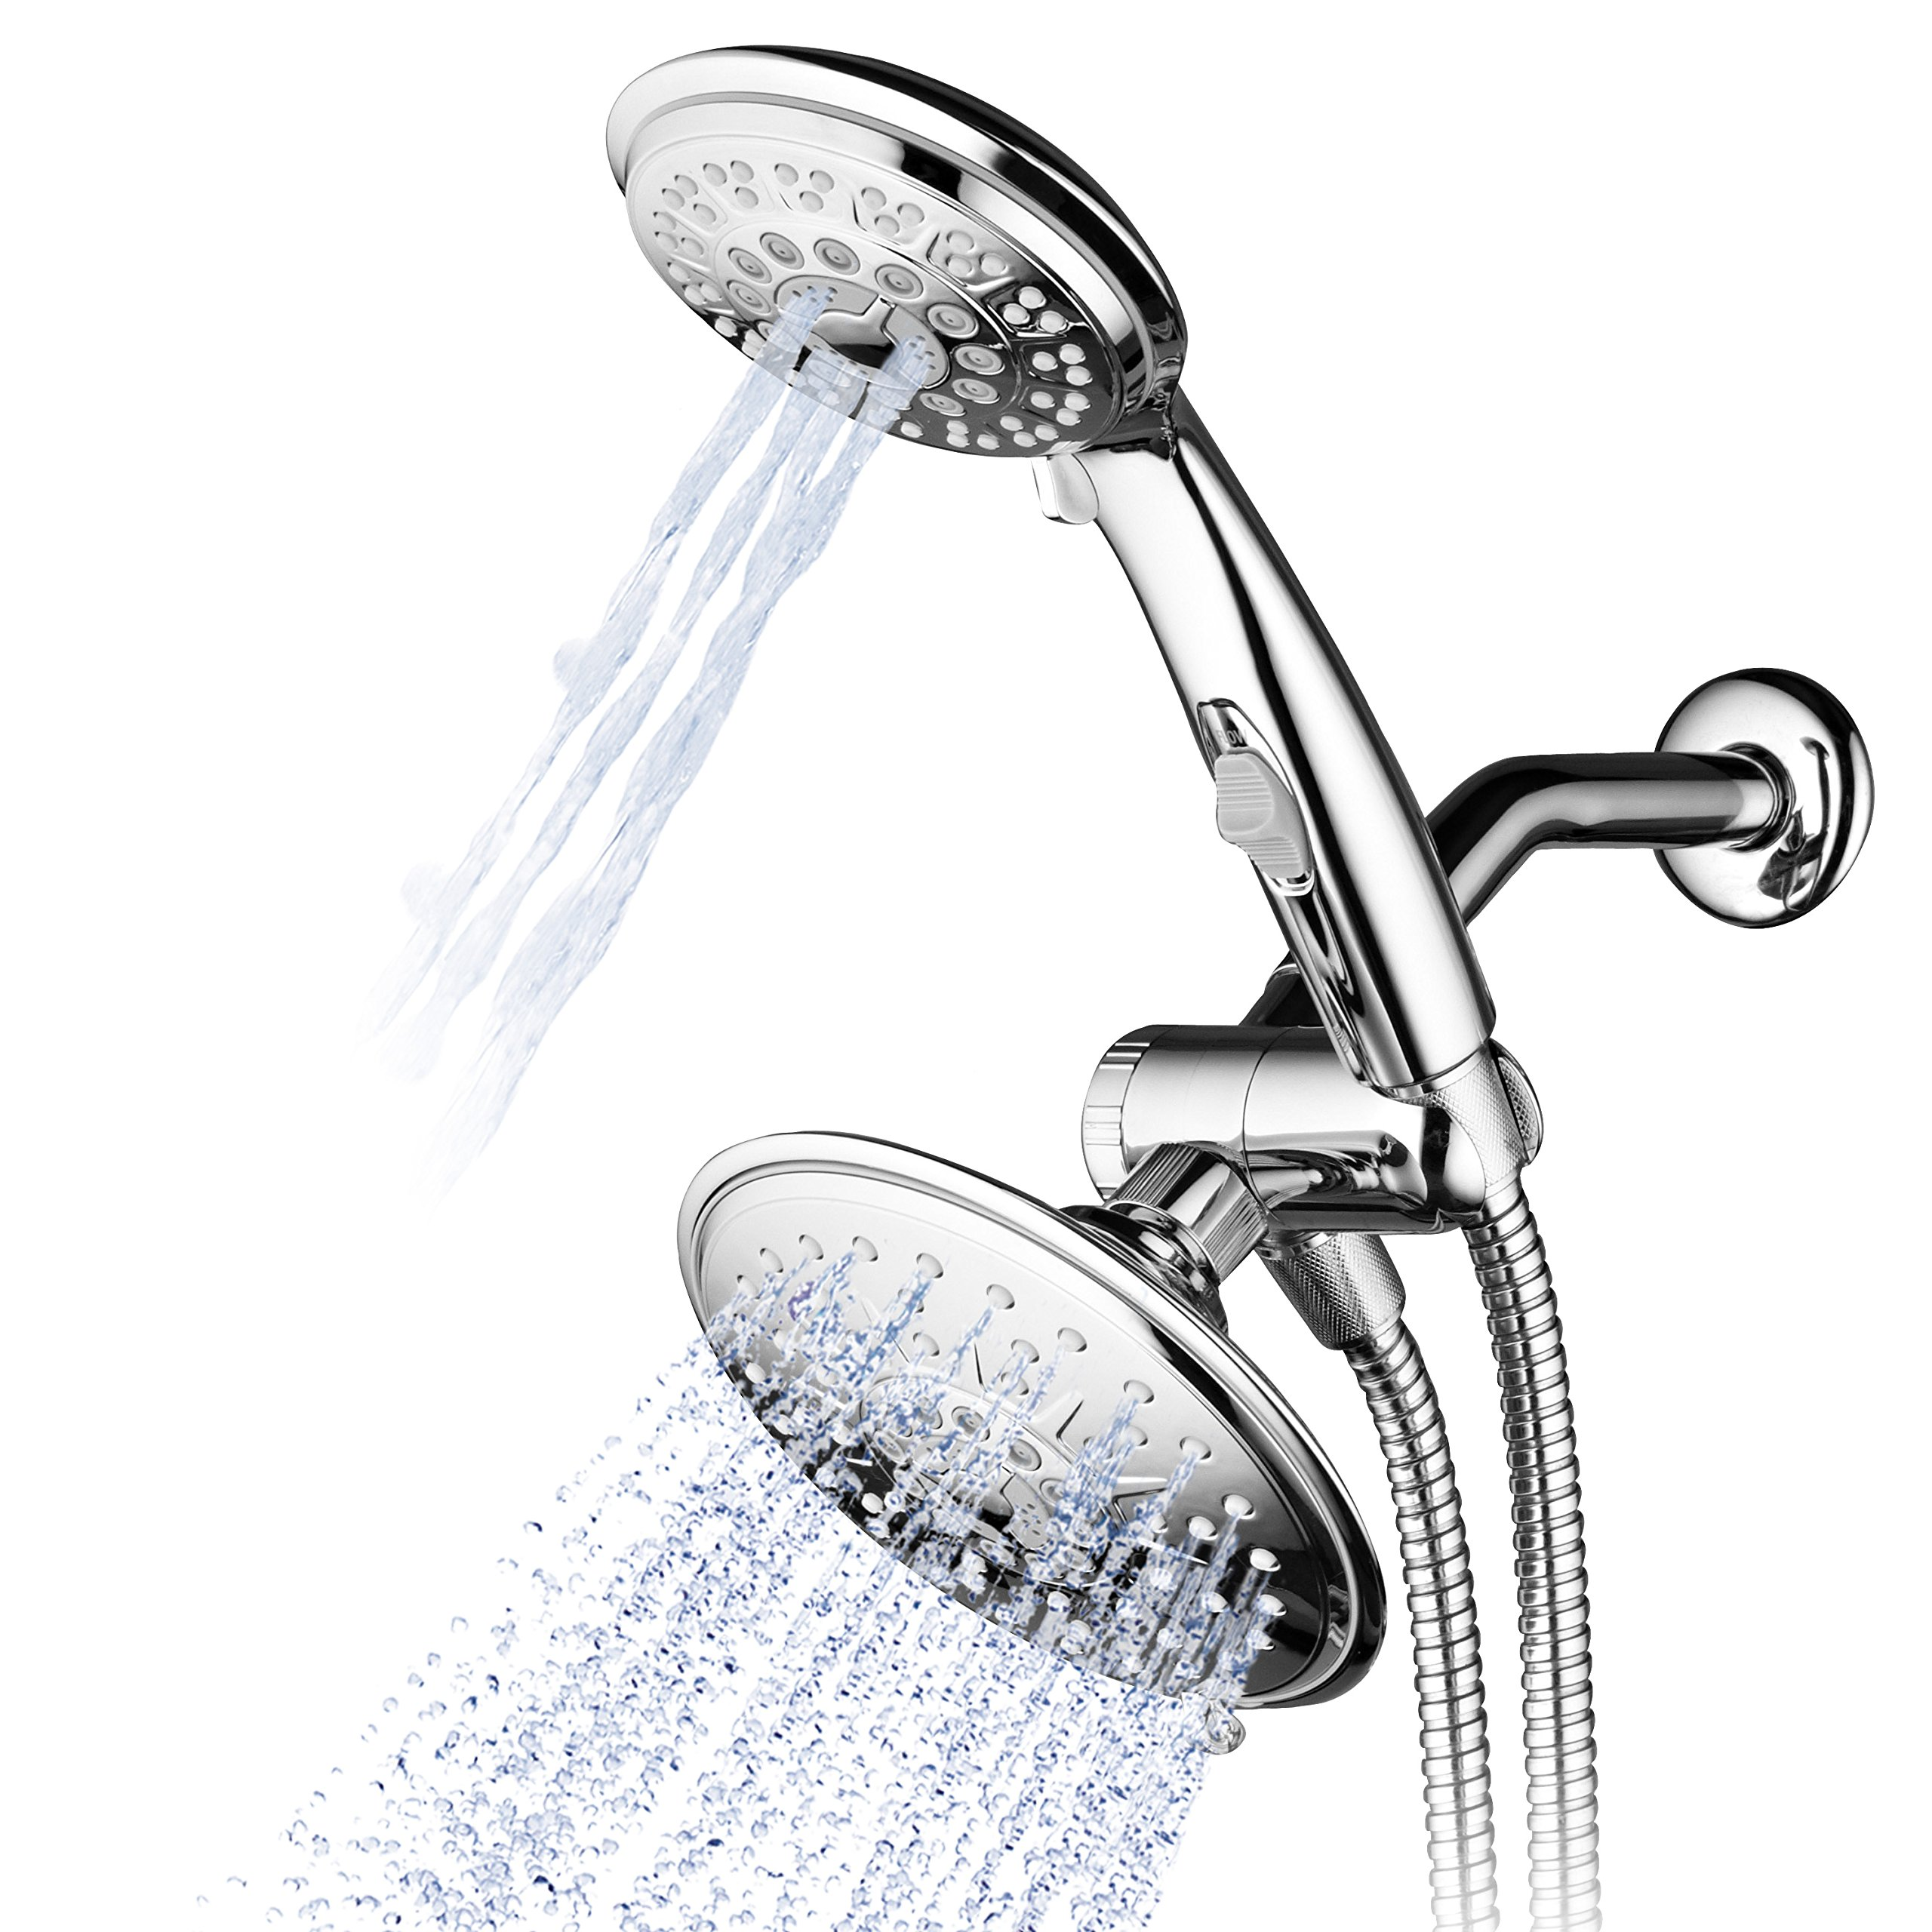 Hydroluxe 1842 30-Setting Ultra-Luxury 3-way 6 Inch Rainfall Shower Head|Handheld Shower Combo with Patented ON/OFF Pause Switch. Switch between shower heads or use both together! (Premium Chrome)